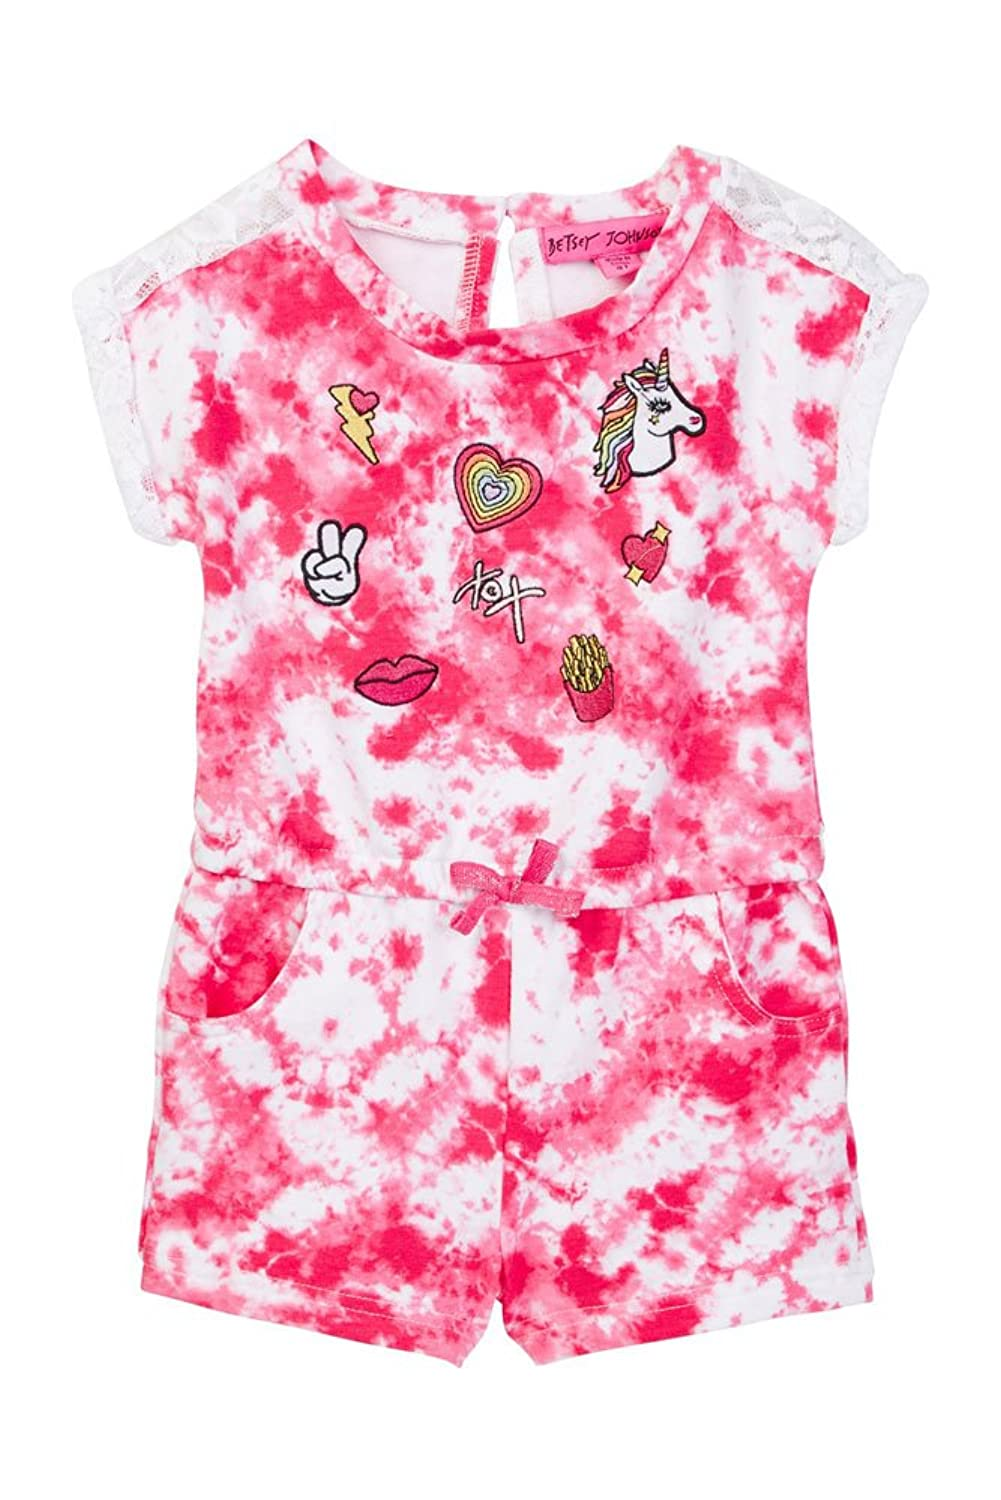 Betsey Johnson Tie Dye Embroidered Patch Romper (Little Girls) 6